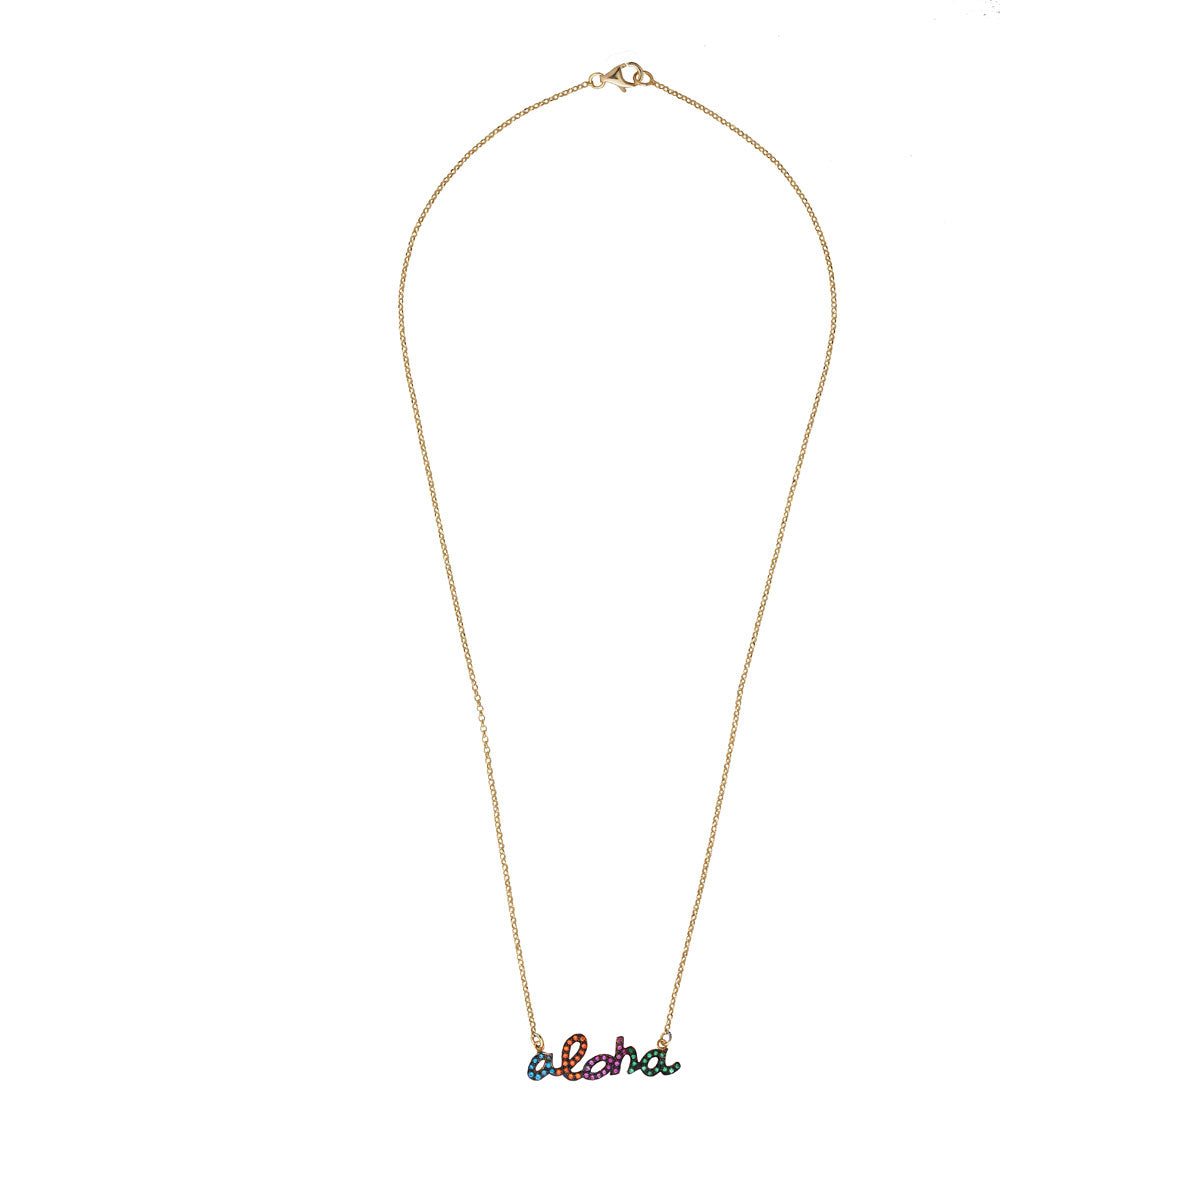 Aloha Gold Plated 925 Sterling Silver Chain Short Necklace